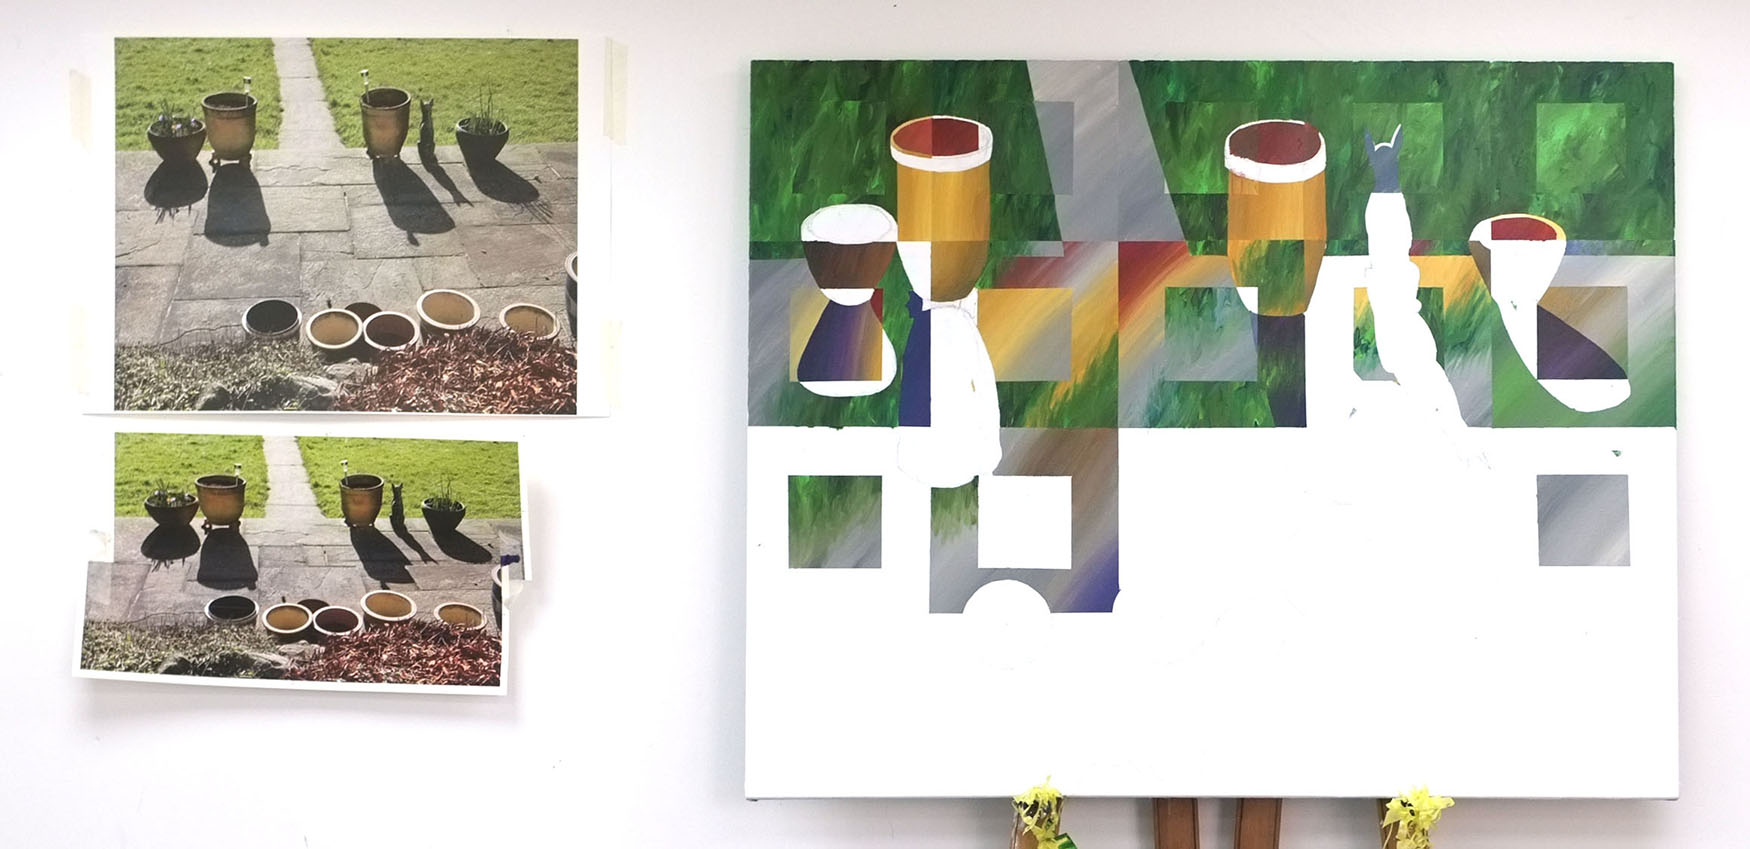 intial photograph, cut and collaged then transferred onto the canvas using the traditional grid